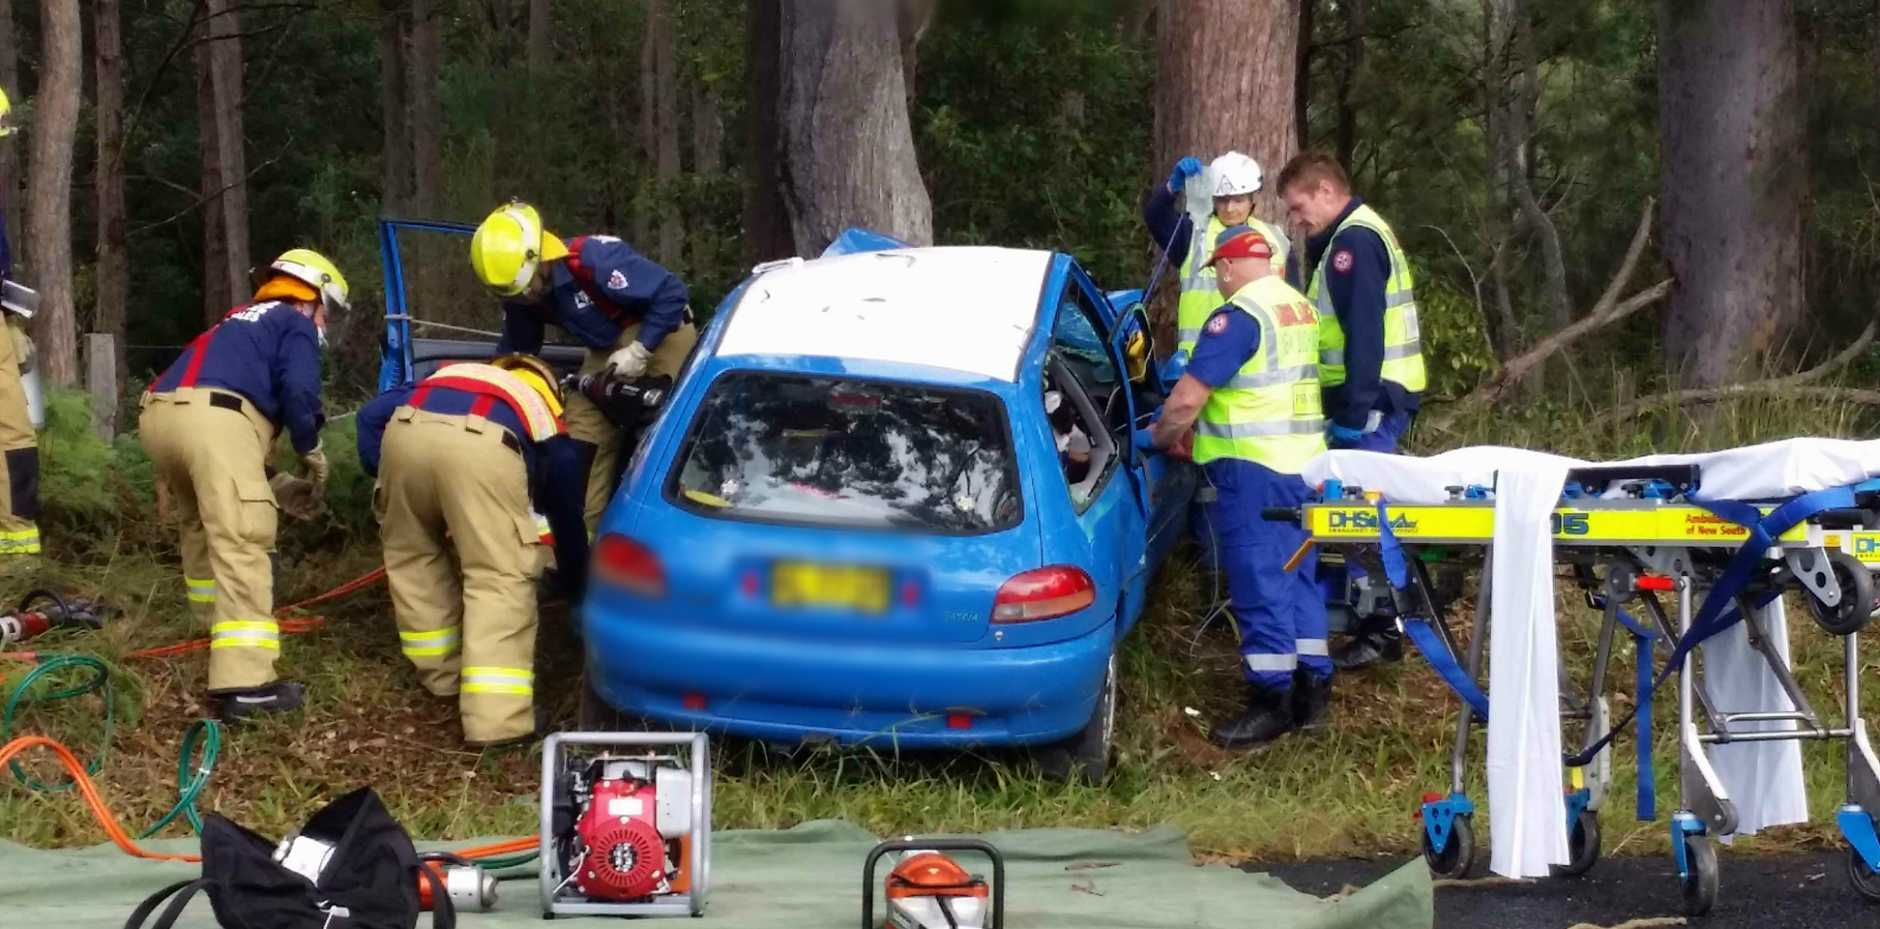 A woman has admitted to Coffs Harbour Base Hospital after a single vehicle crash on Bucca Rd this morning.